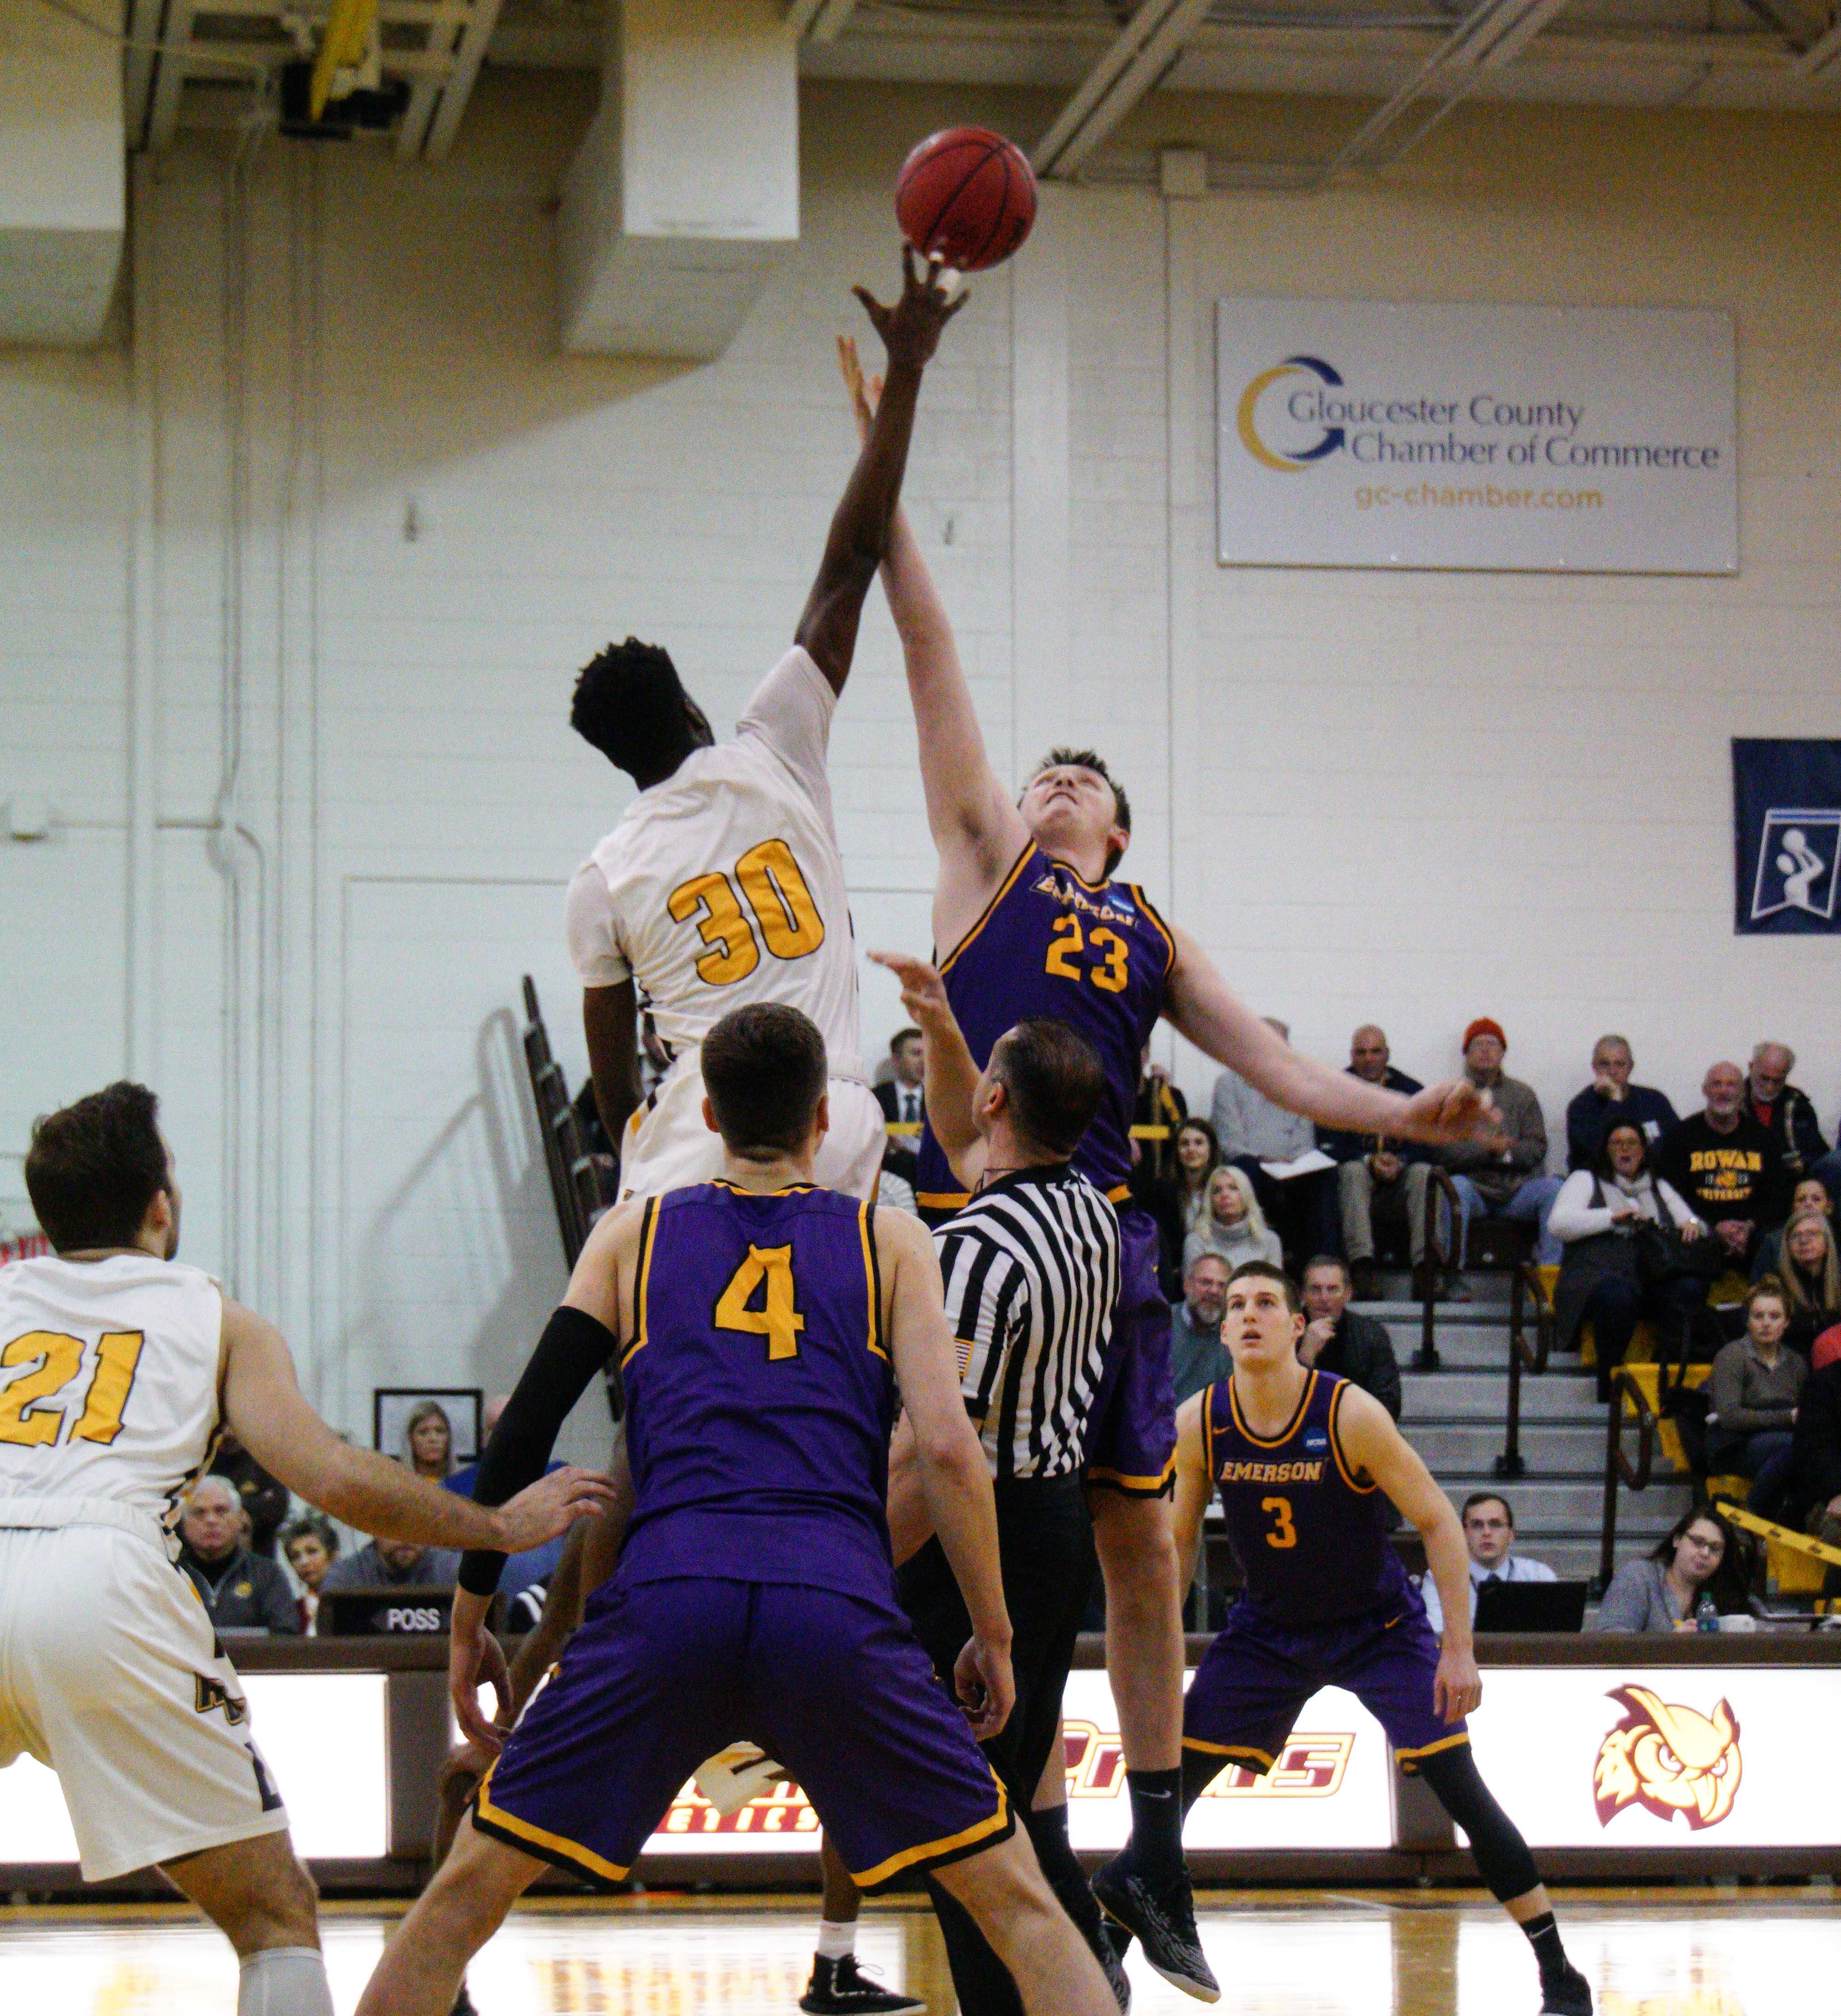 Freshman Jarred Houston (center, No. 23) rises up for two of his 12 points against Rowan University. Photo courtesy of The Whit